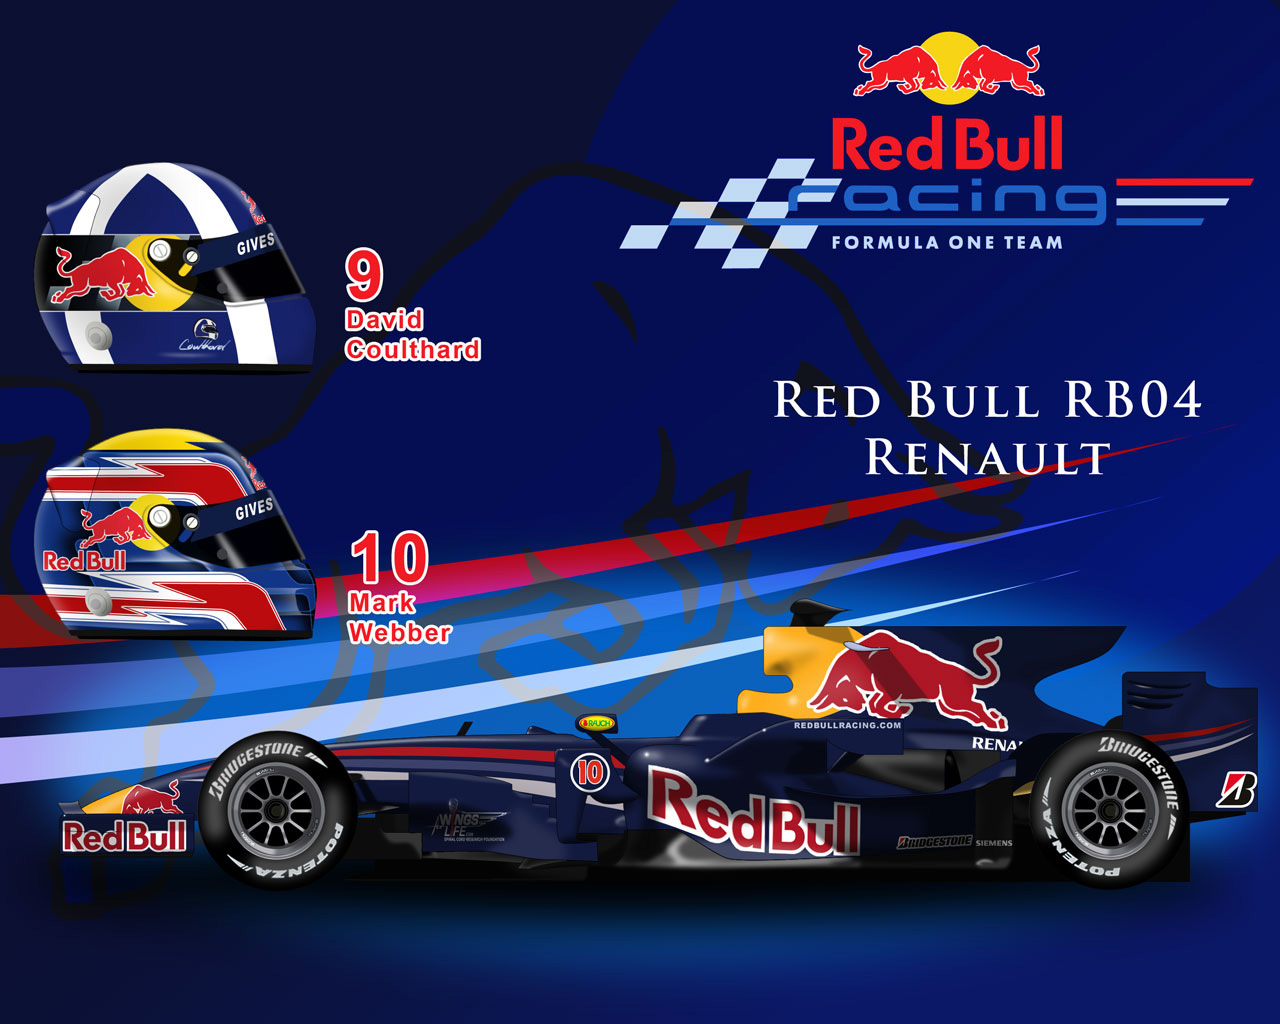 red bull research Research and review red bull jobs learn more about a career with red bull including all recent jobs, hiring trends, salaries, work environment and more.